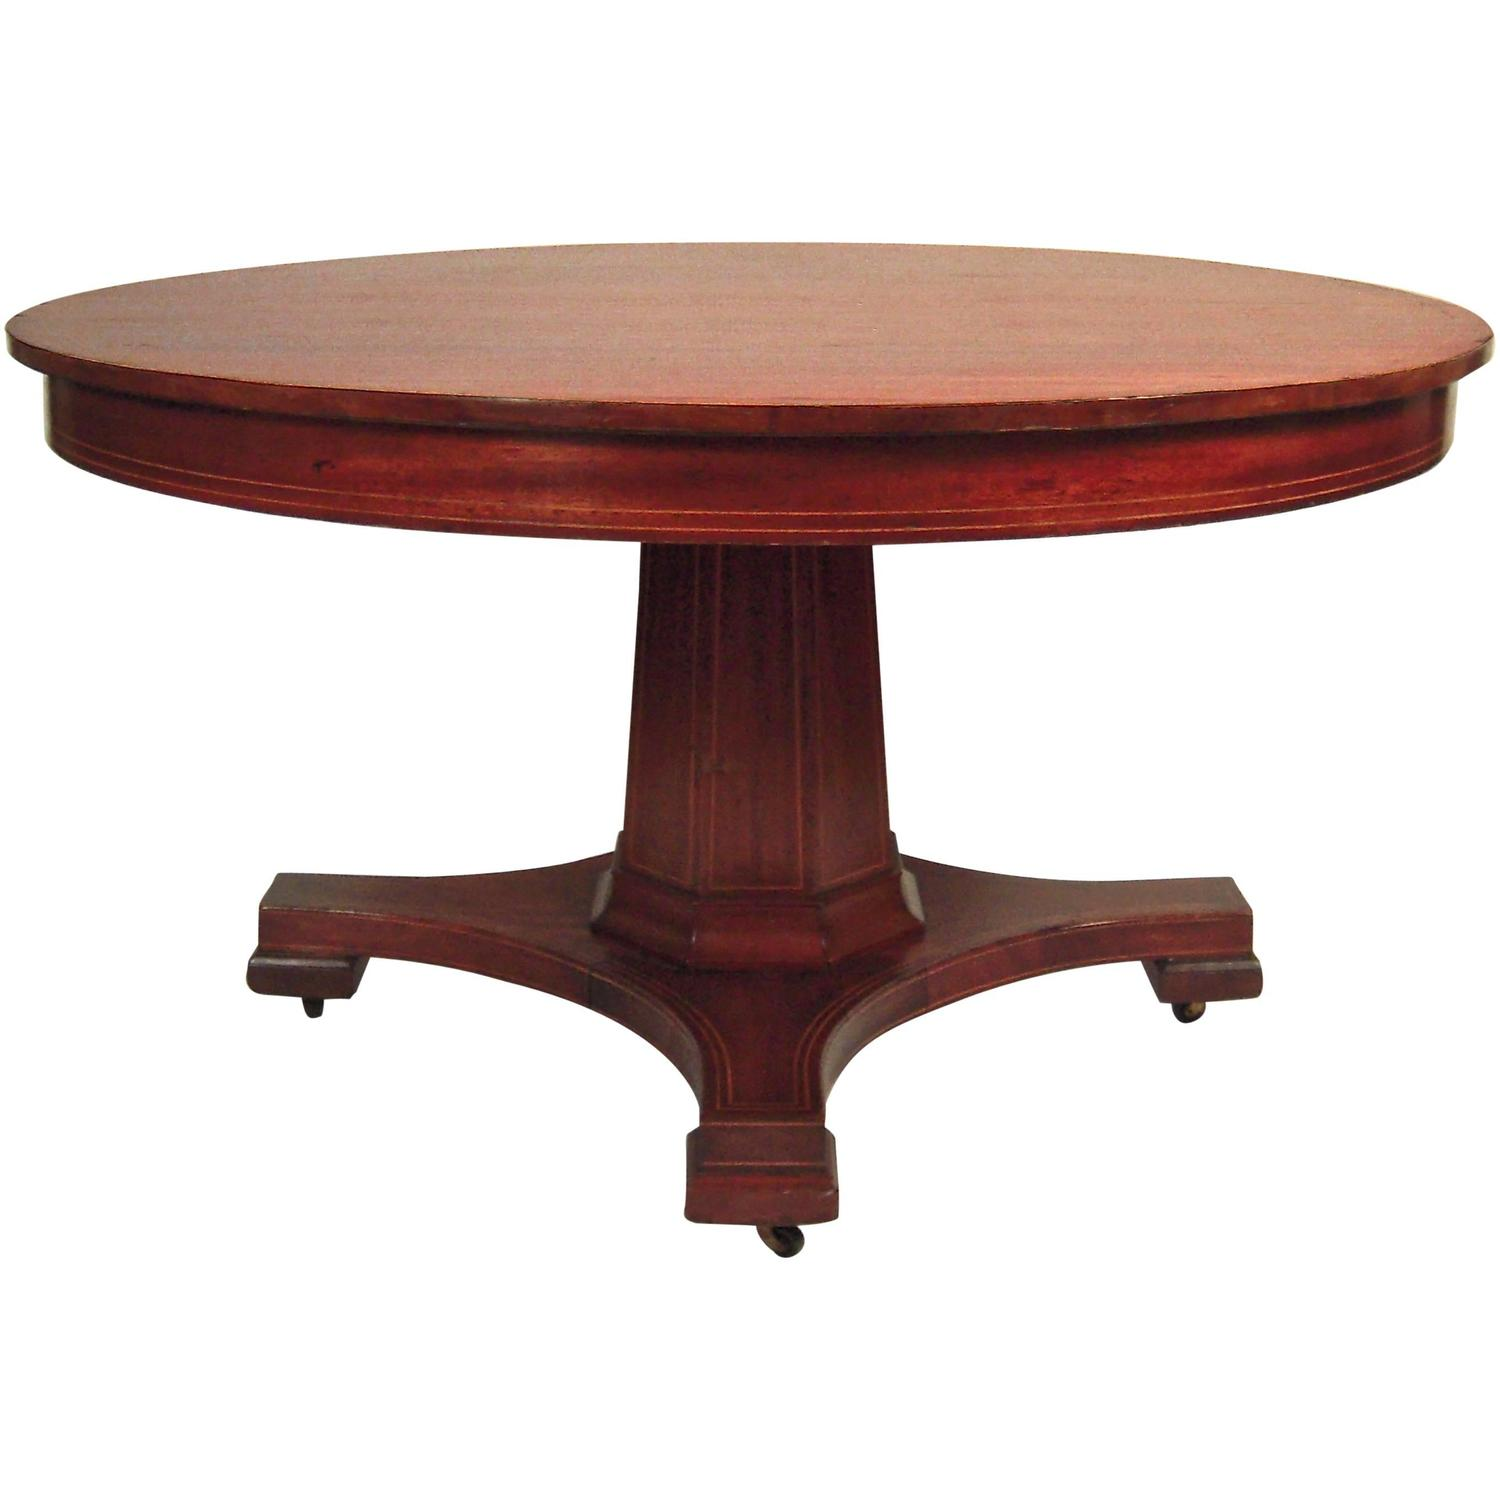 Inlaid mahogany round extension dining table 54 diameter for Round extension dining table